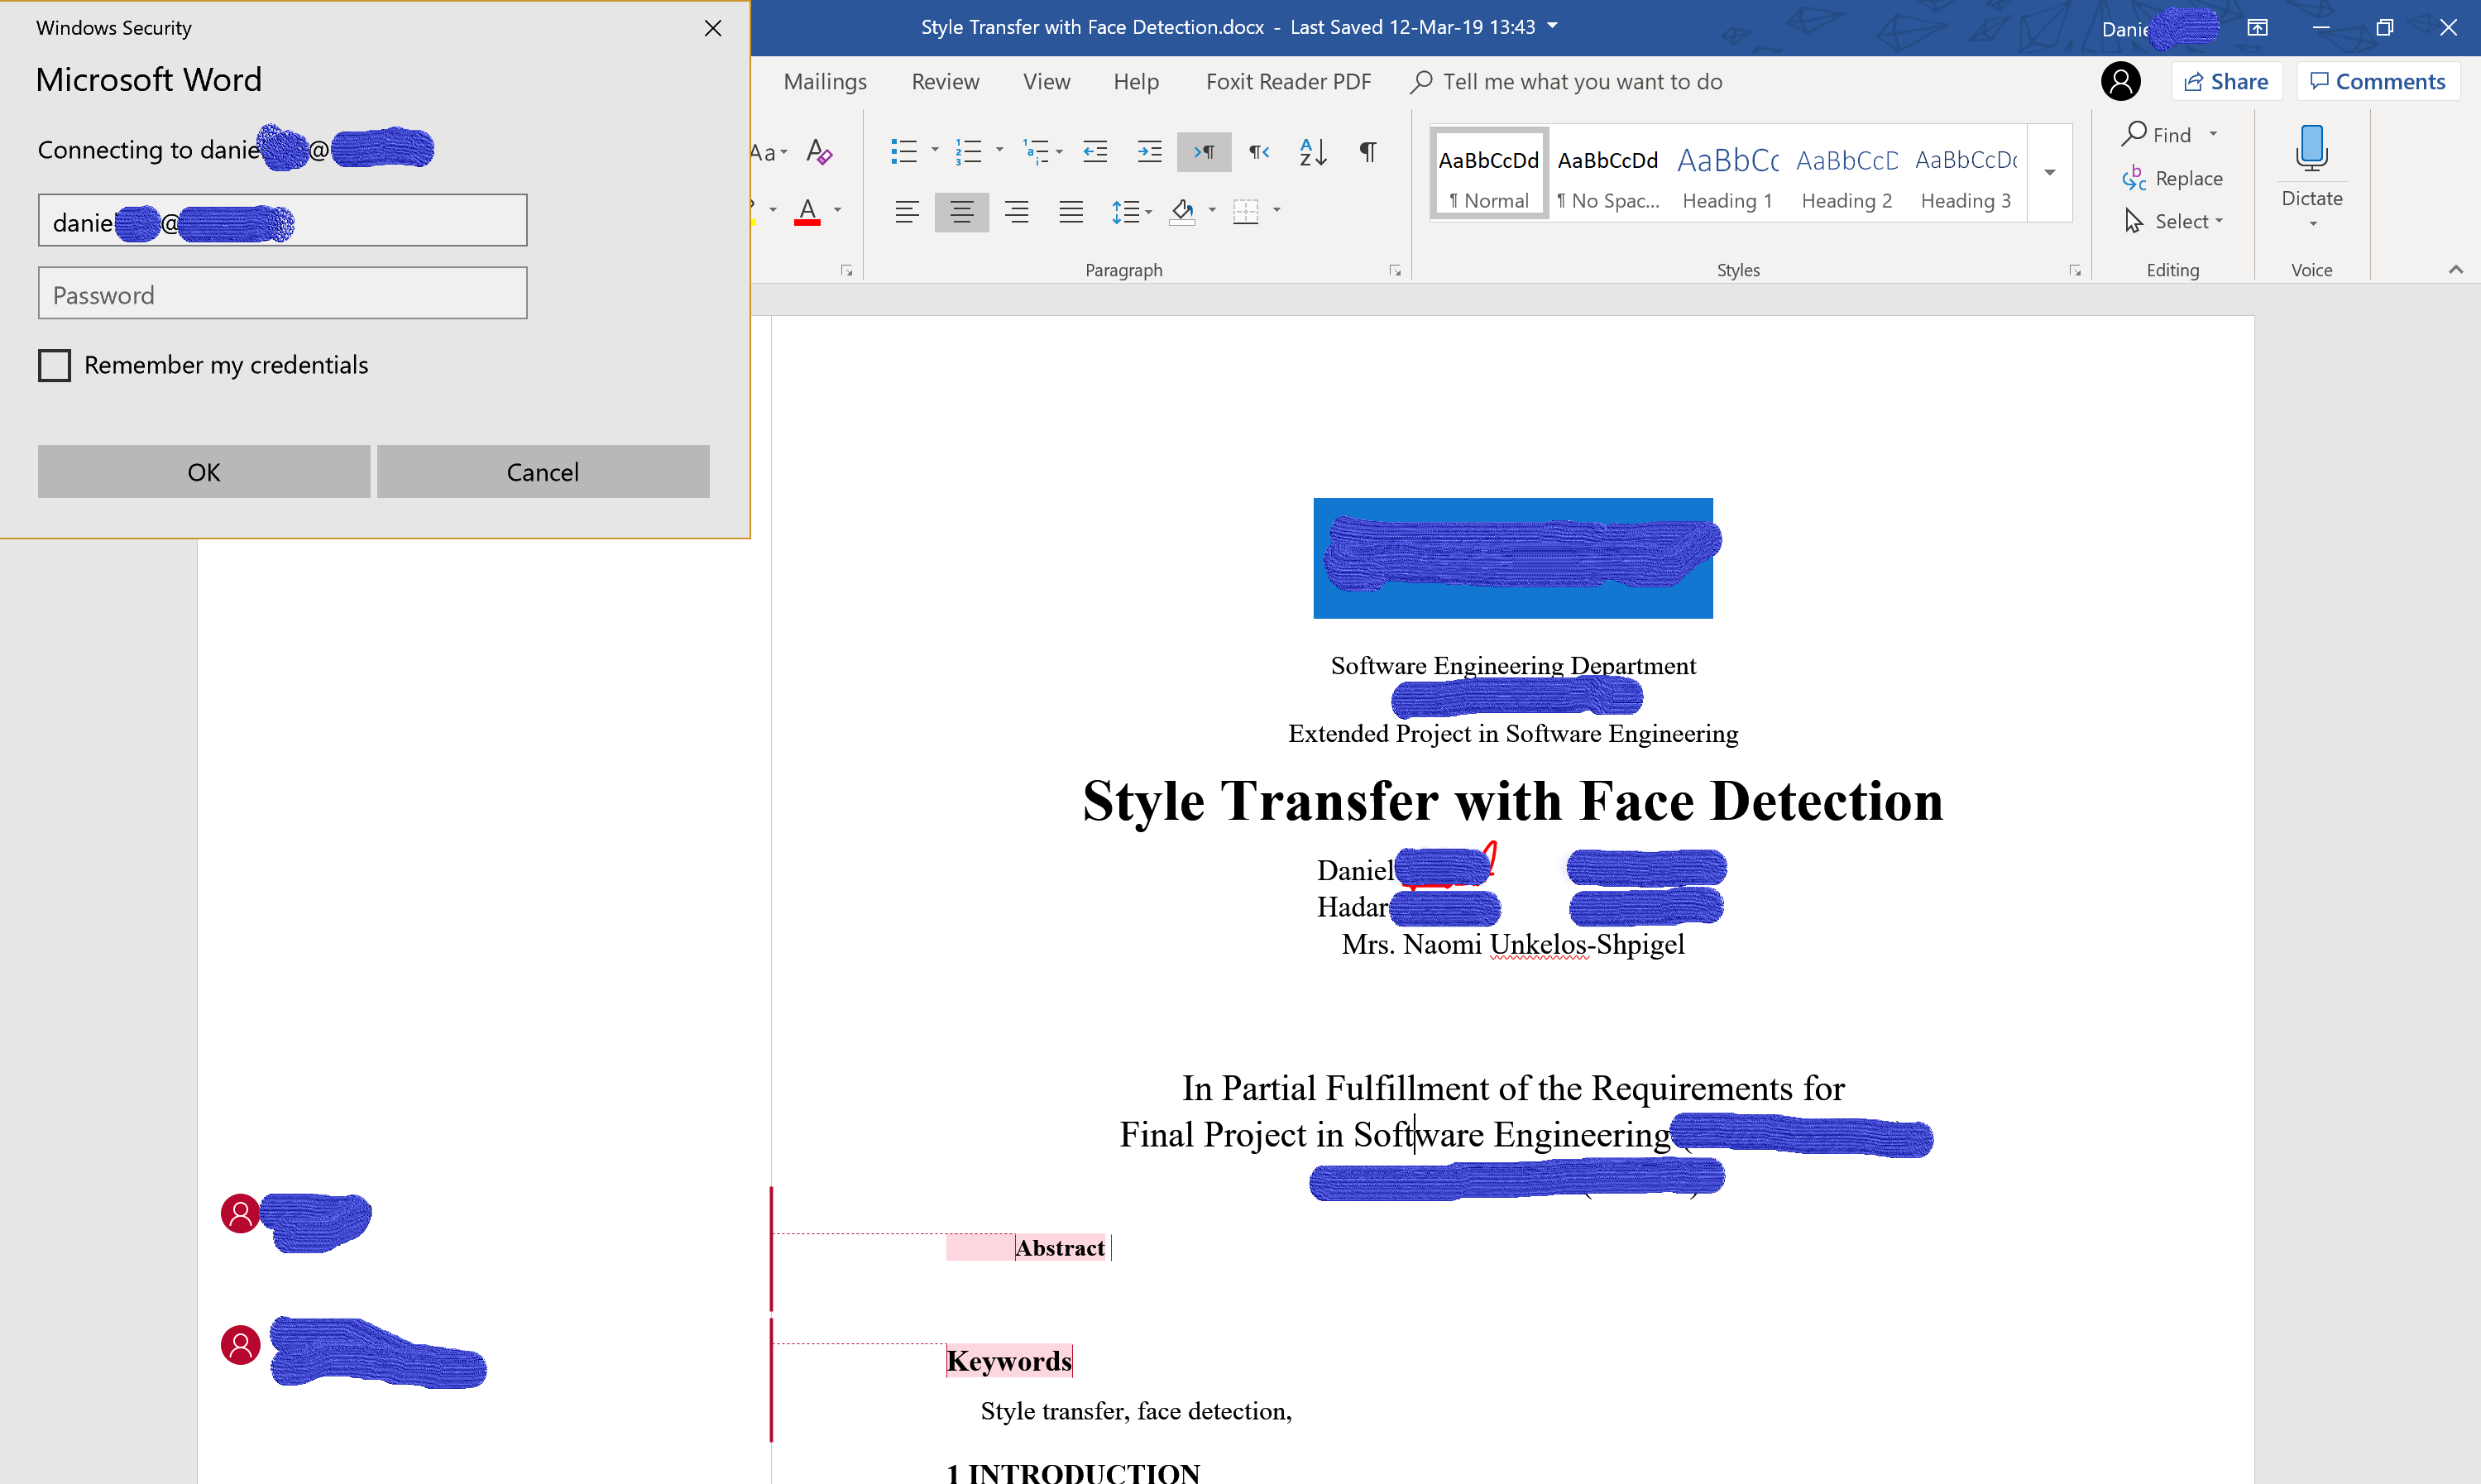 microsoft word keeps asking for credentials on unrelated account